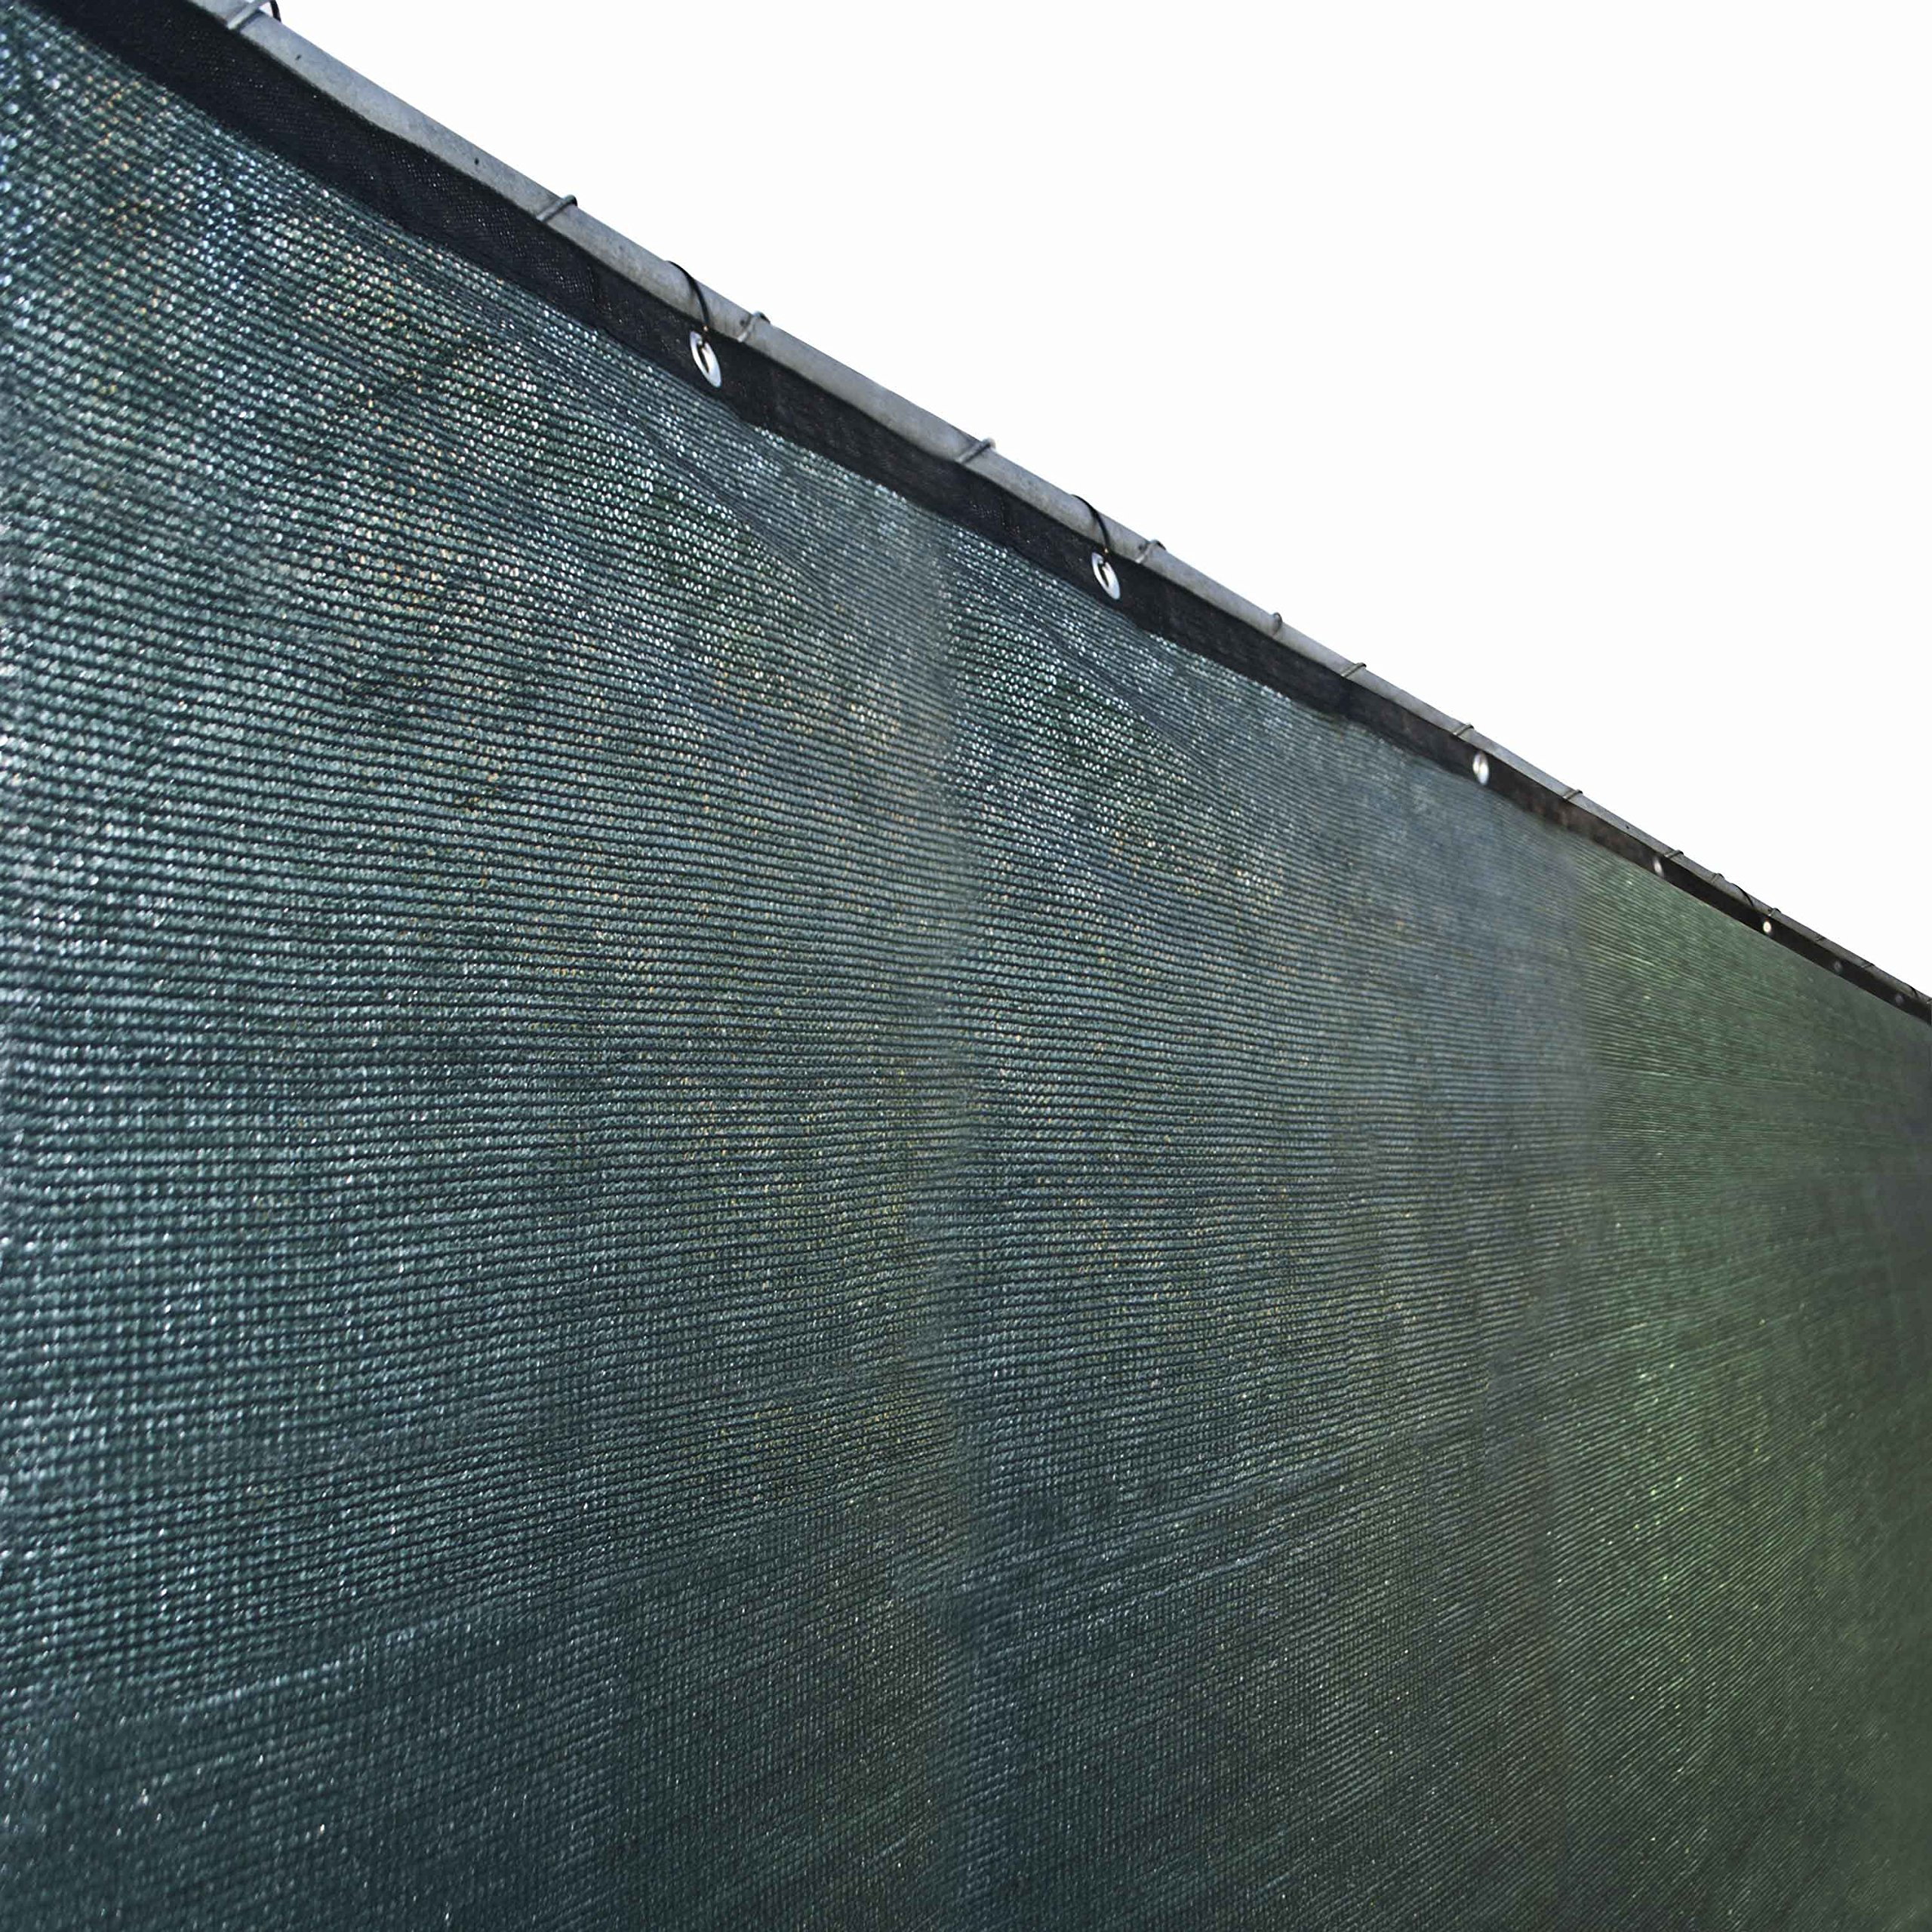 ALEKO PLK0450DG Fence Privacy Screen Outdoor Backyard Fencing Windscreen Shade Cover Mesh Fabric with Grommets 4 x 50 Feet Dark Green by ALEKO